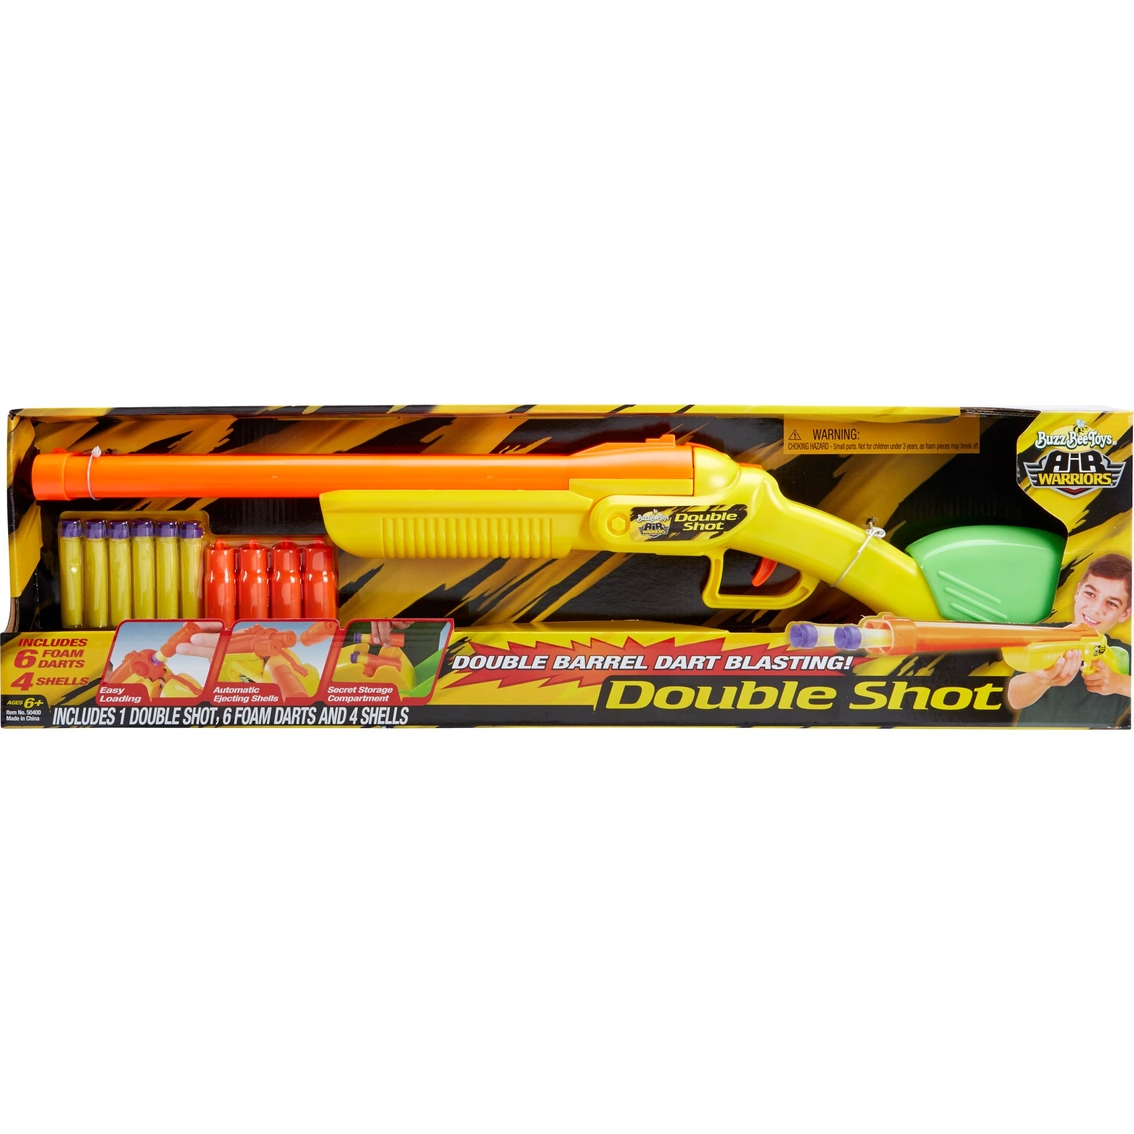 Buzz Bee Toys Air Warriors Side By Side Double Shot Blaster Blasters Soakers Baby Toys Shop The Exchange